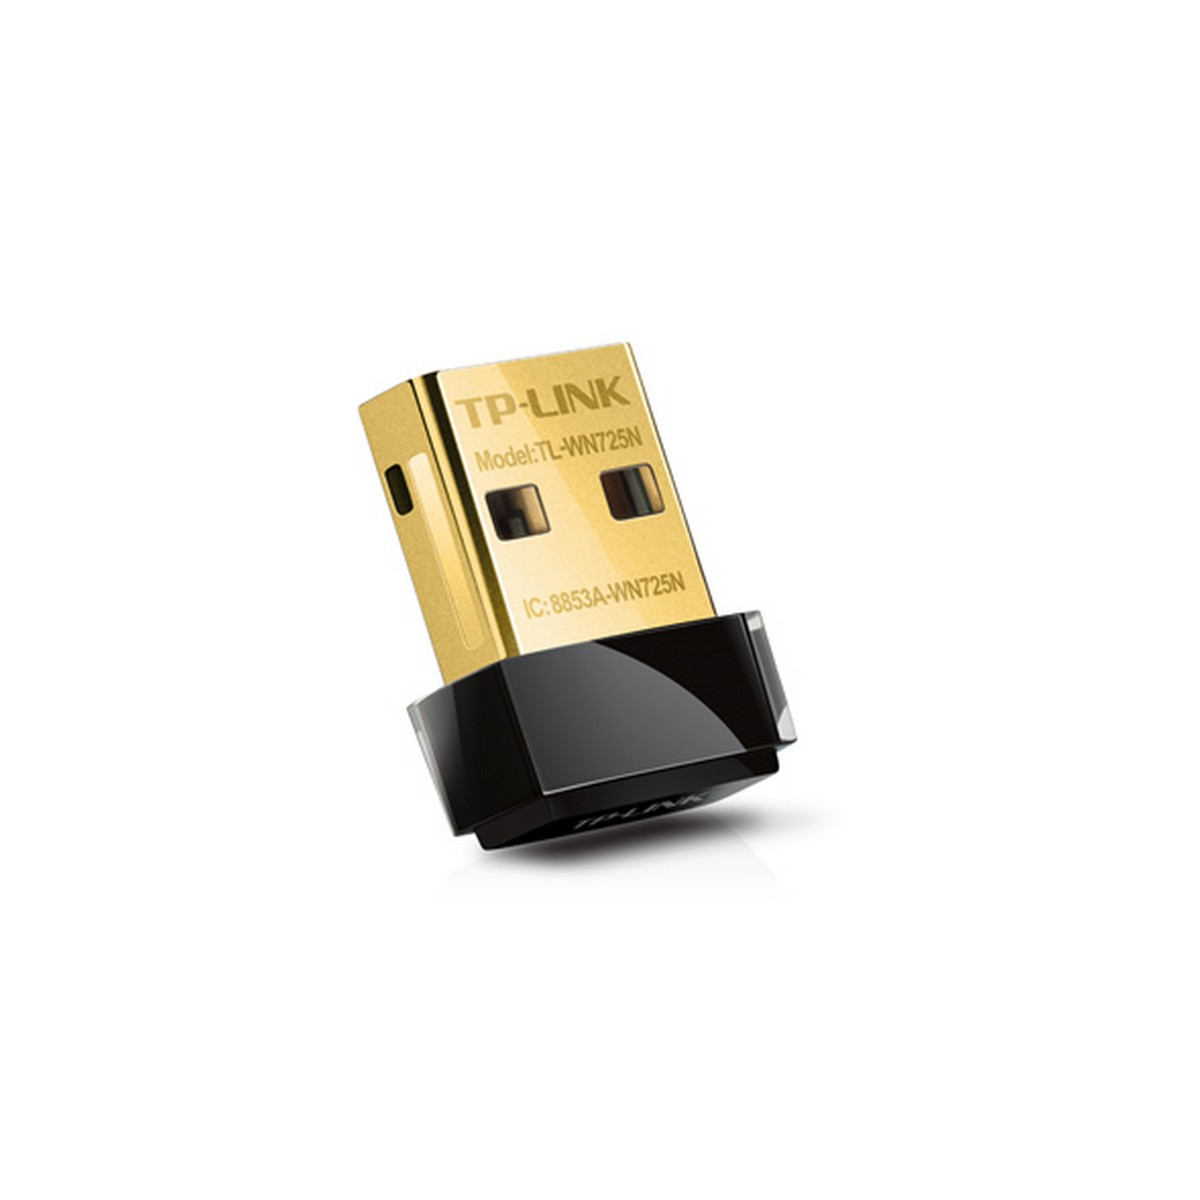 [OFFICIAL] TL-WN725N Wireless Wifi USB Adapter 150Mbps With 1 Year Warranty